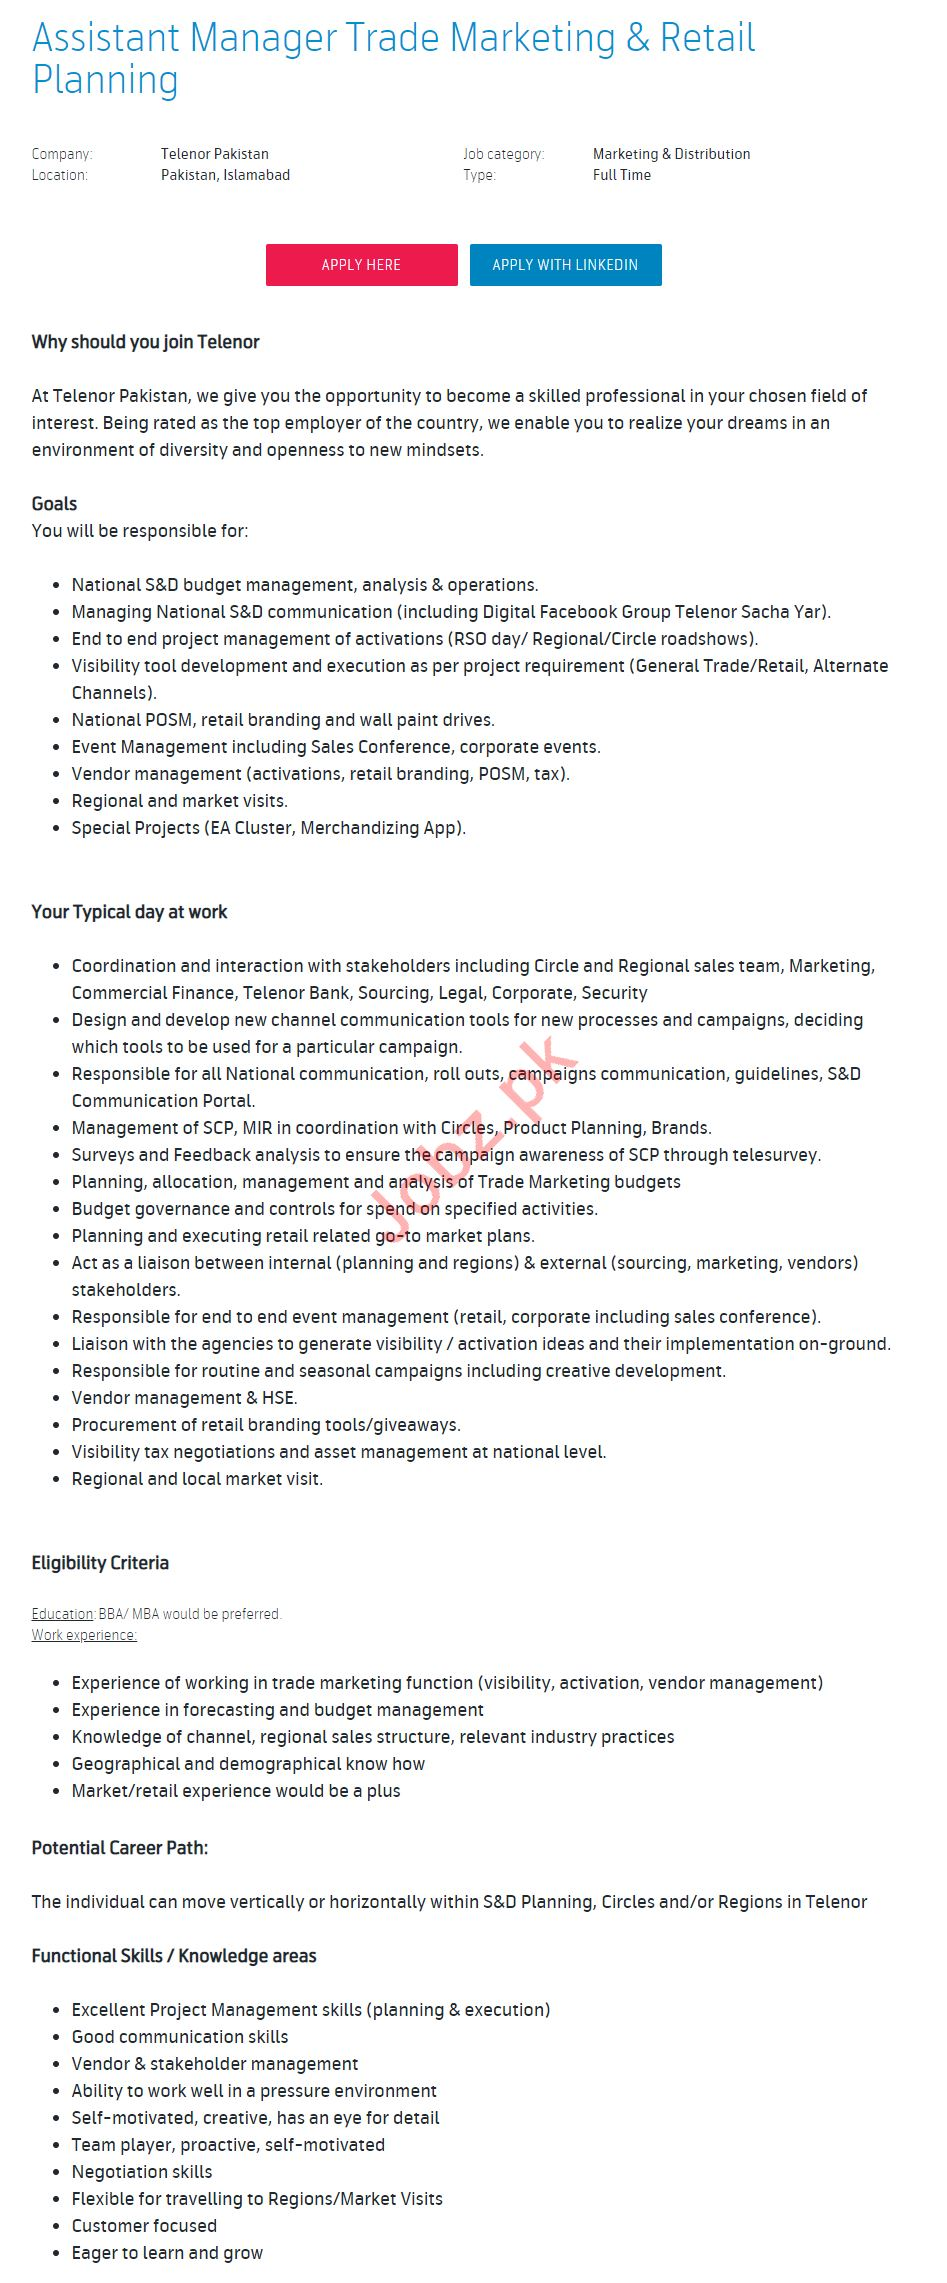 Assistant Manager Trade Marketing & Retail Planning Jobs